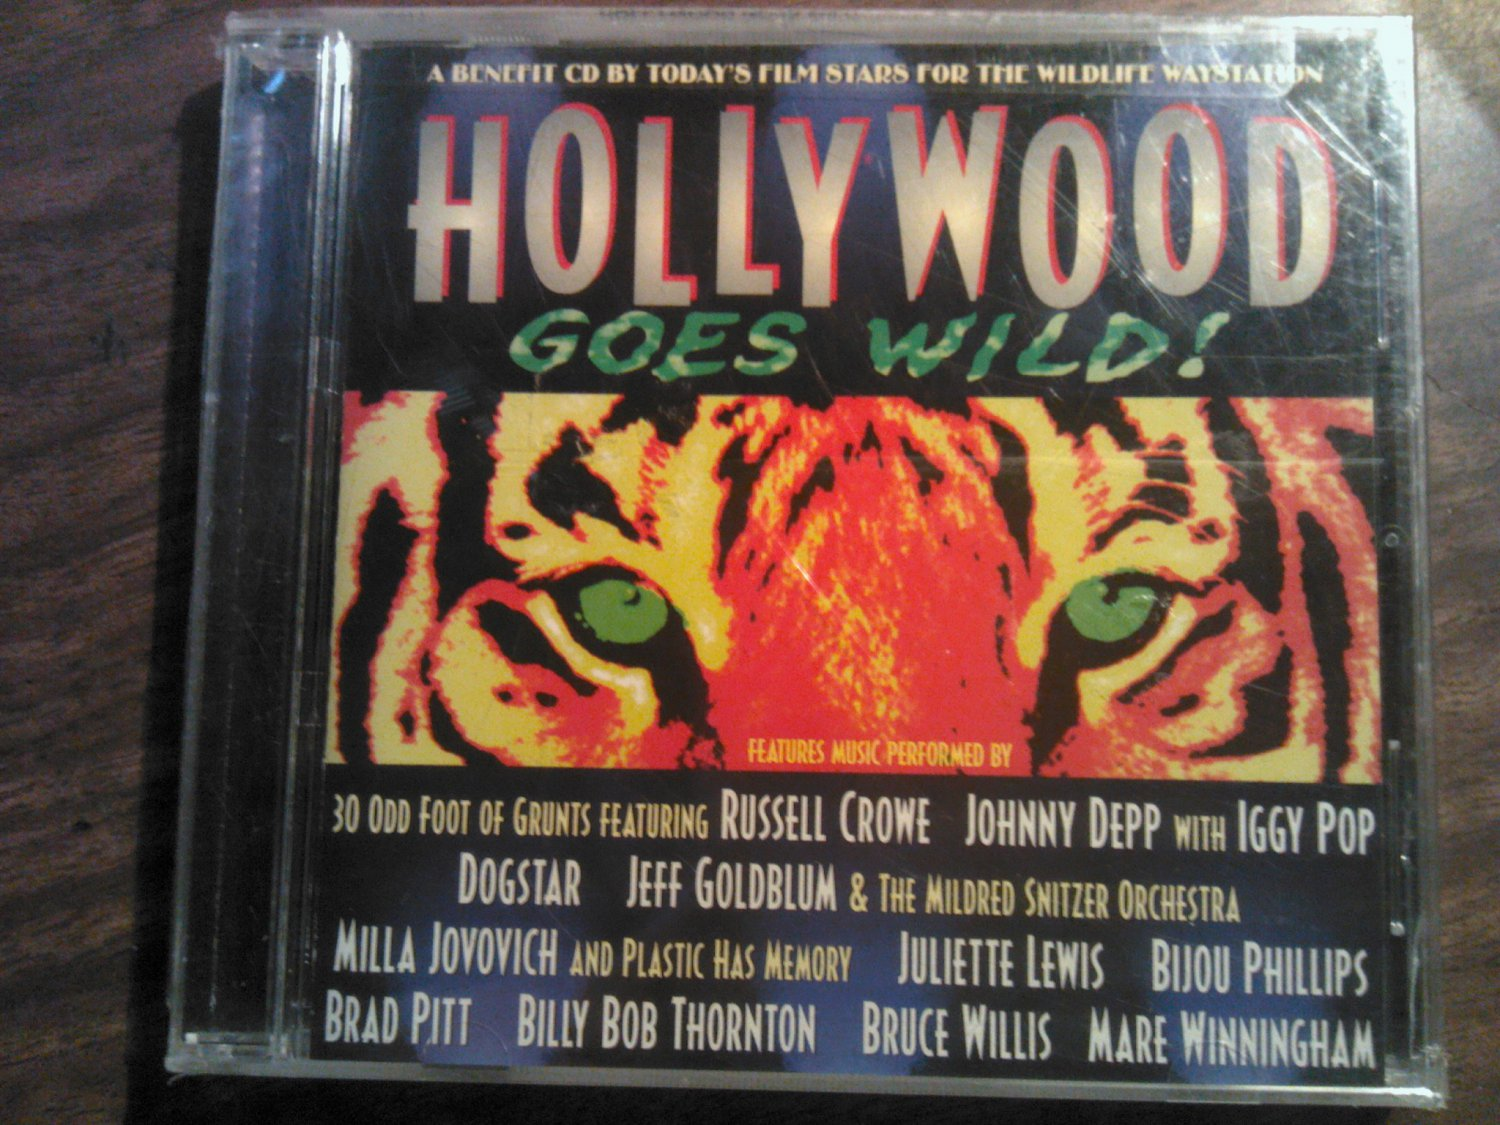 CD V/A Johnny Depp Jeff Goldblum Dogstar Billy Bob Thornton Iggy Pop promo SEALED